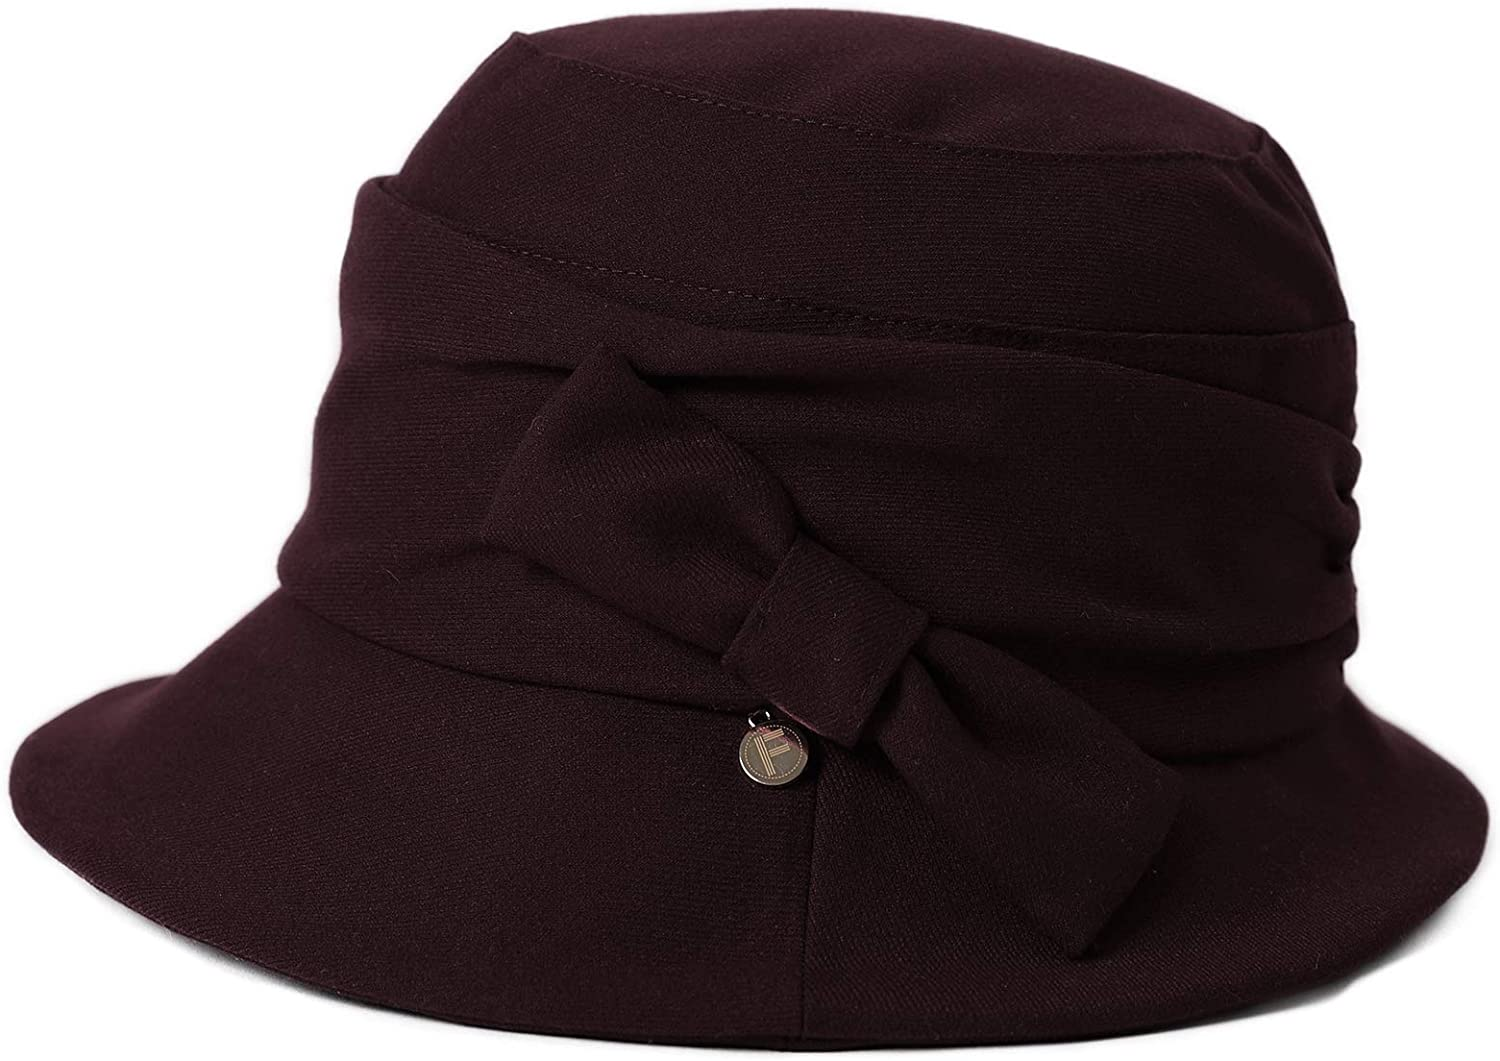 1920s Hat Styles for Women – History Beyond the Cloche Hat Fancet Ladies Wool Bucket Hat Winter 1920s Vintage Cloche Fashionable Derby Church Hats for Women Crushable & Adjustable  AT vintagedancer.com